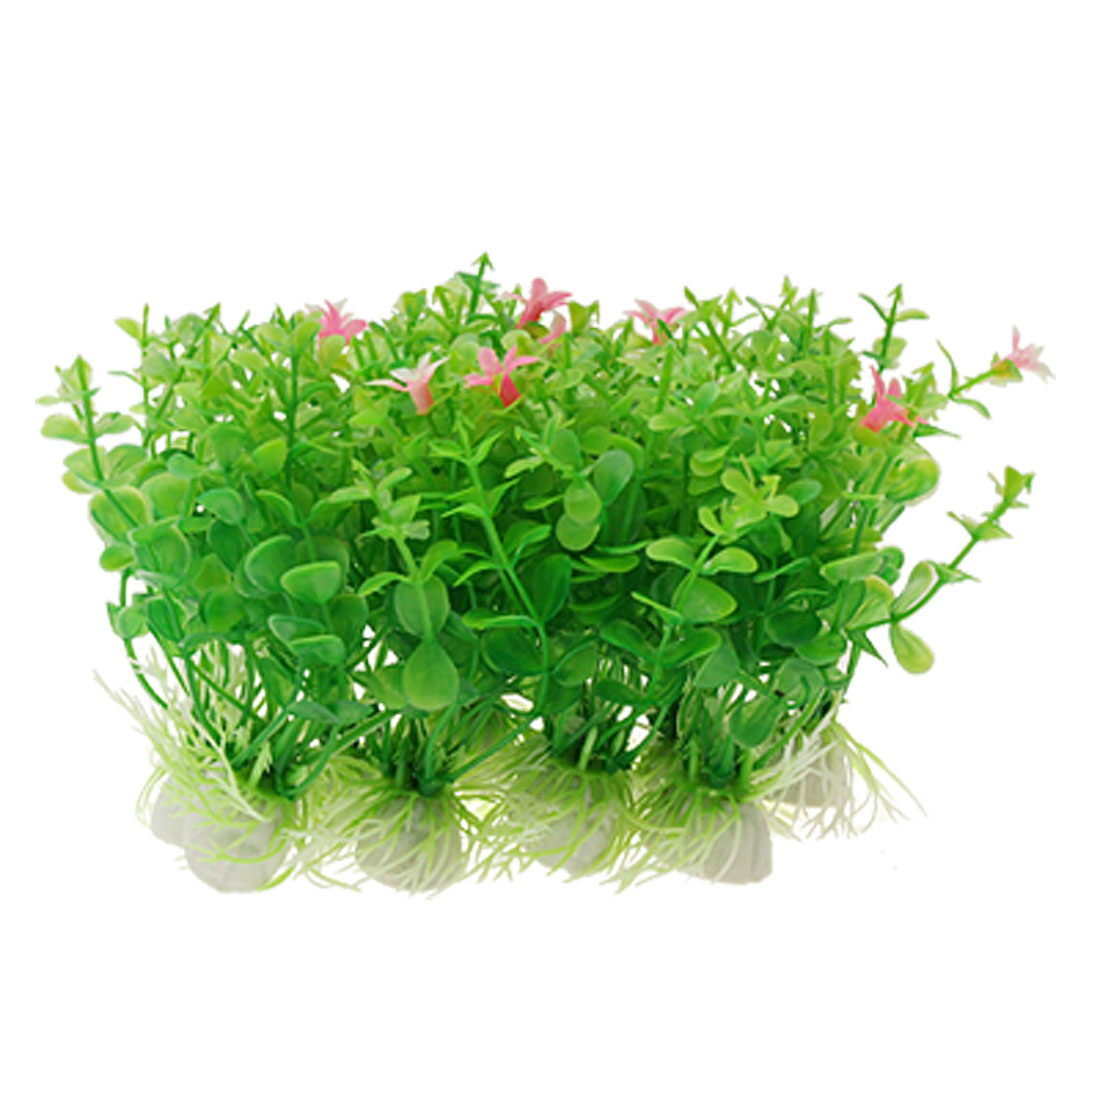 10 Pcs Fish Aquarium Plants Grass Ornament Decor